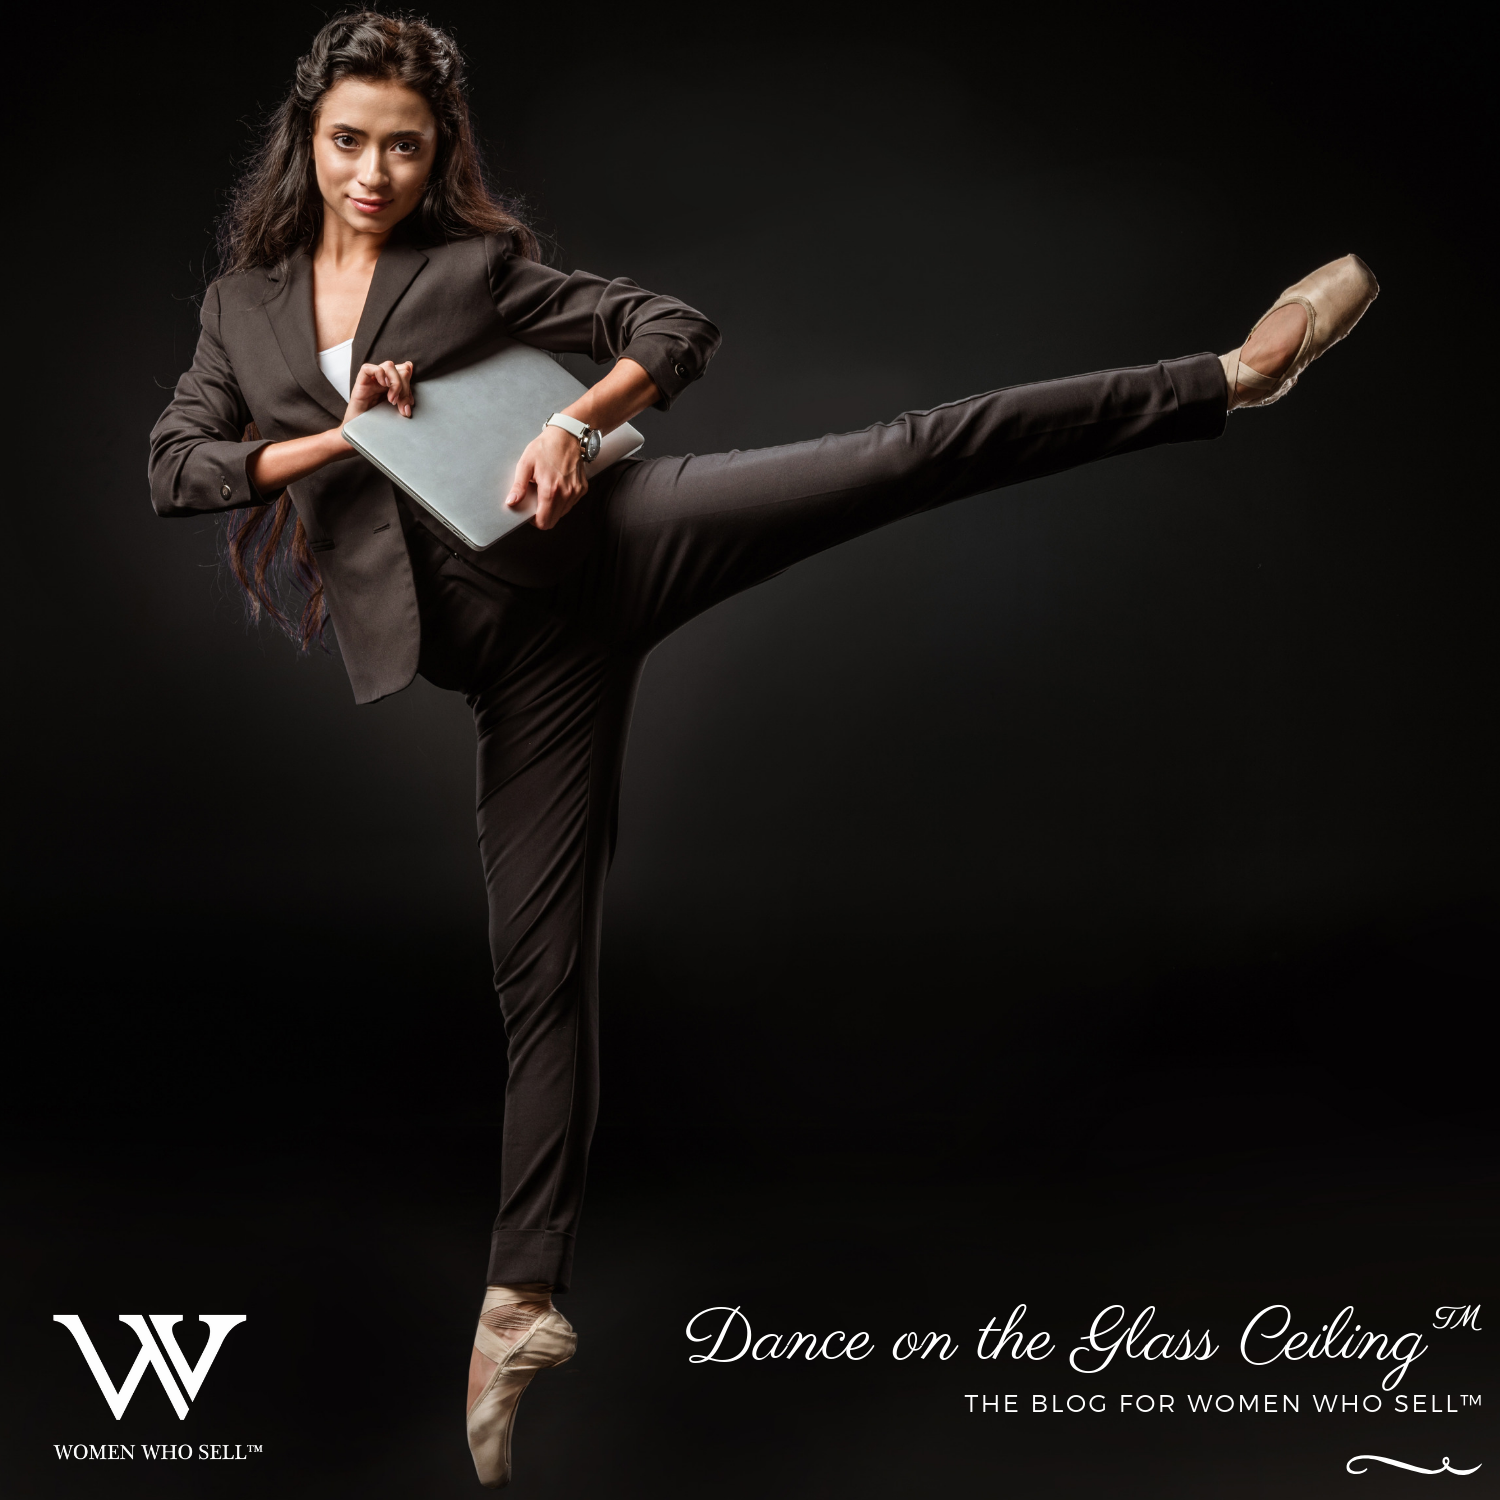 Dance on the Glass Ceiling Blog Banner (1).png